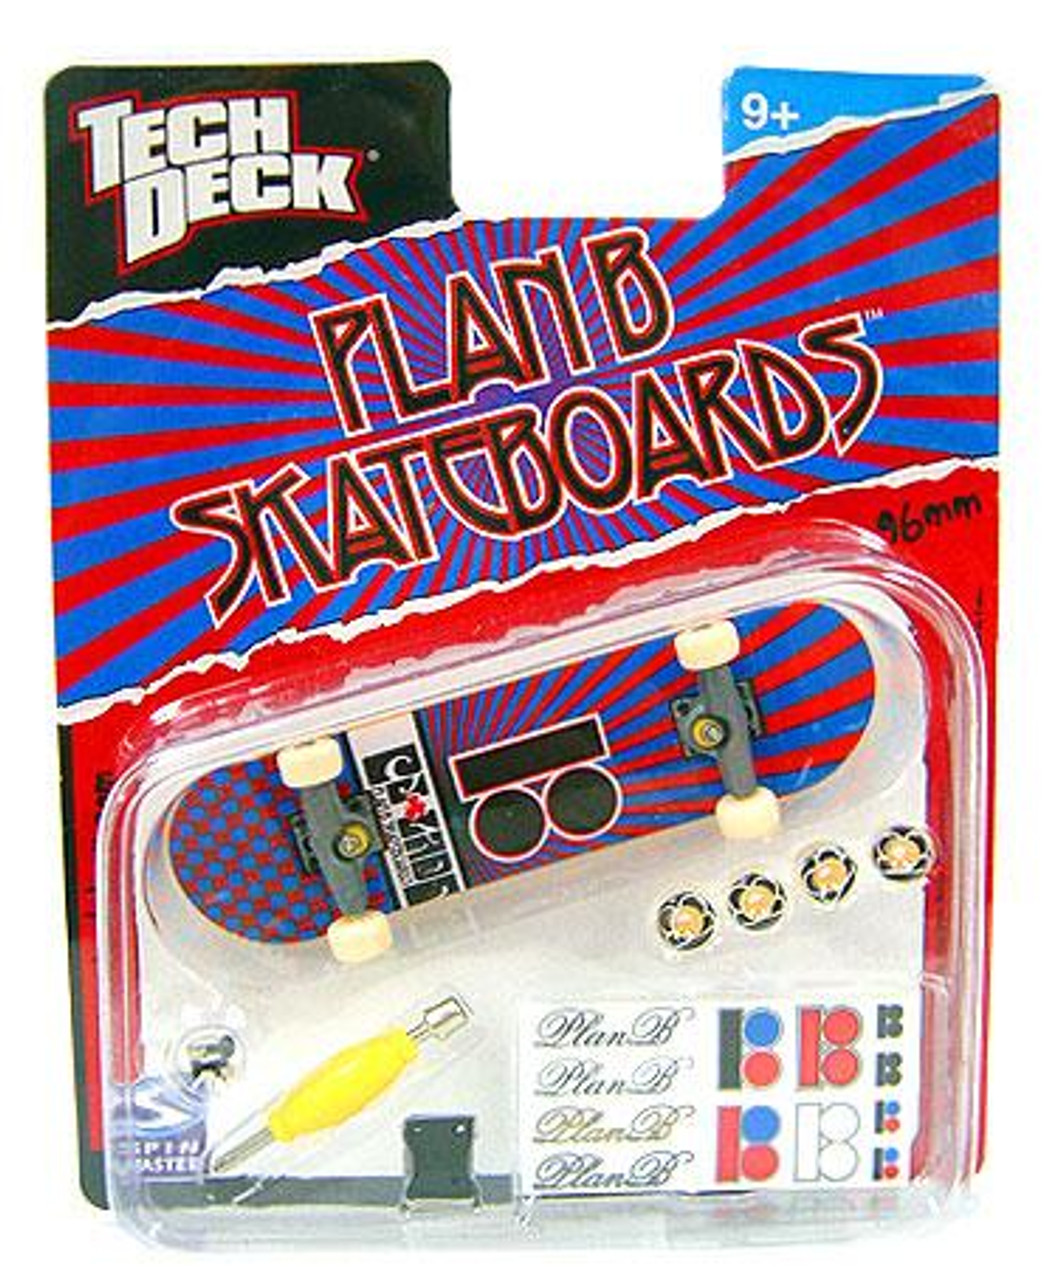 Tech Deck Plan B 96mm Mini Skateboard [Red & Blue]